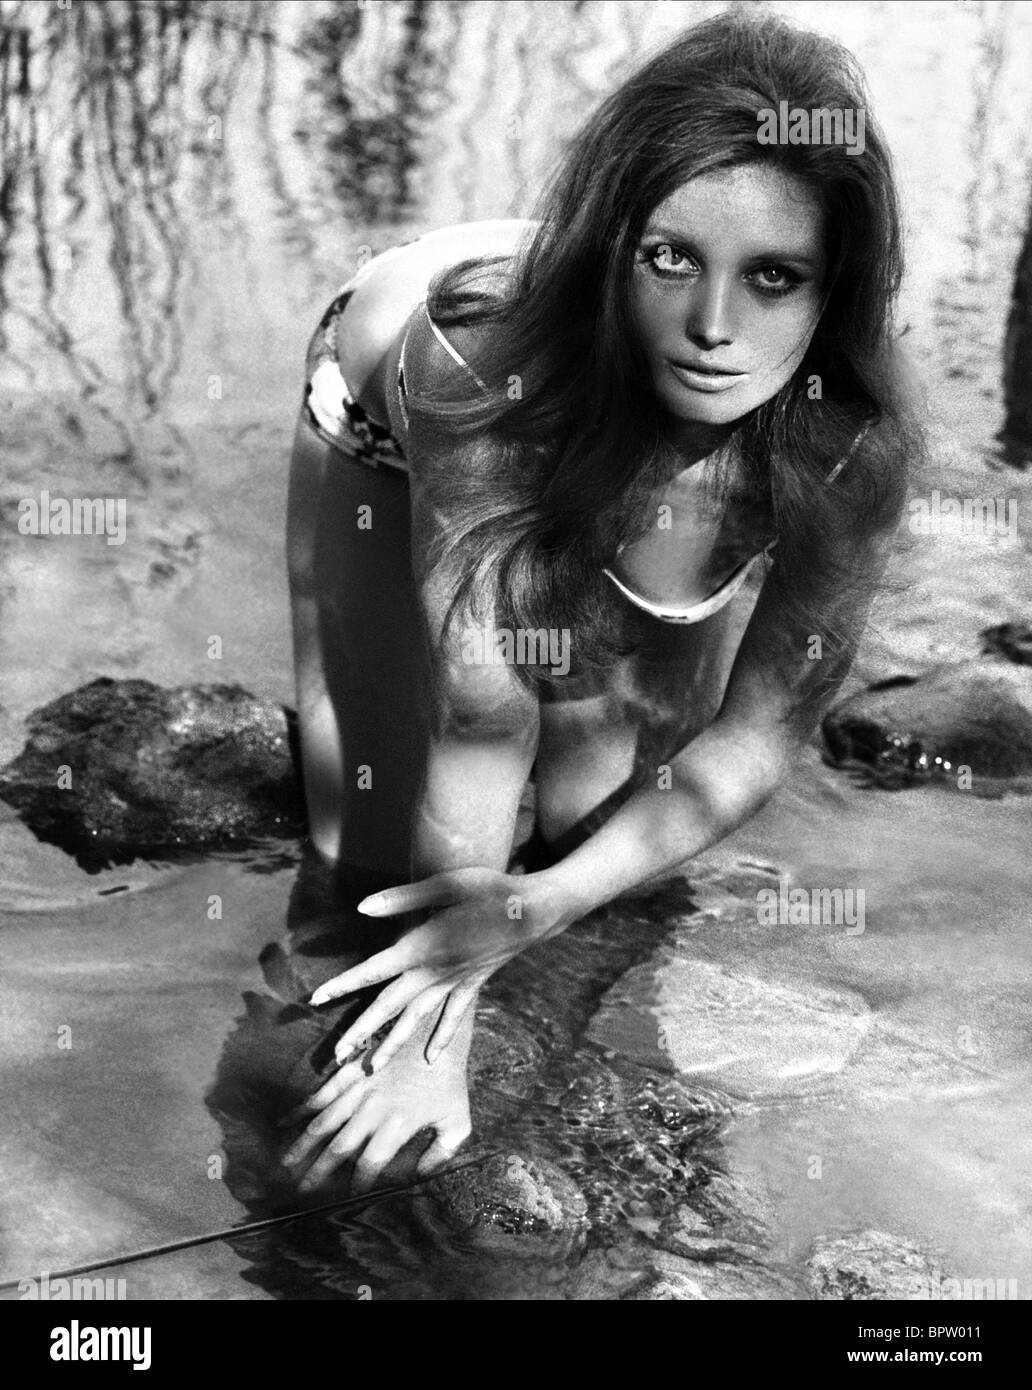 catherine schell photos